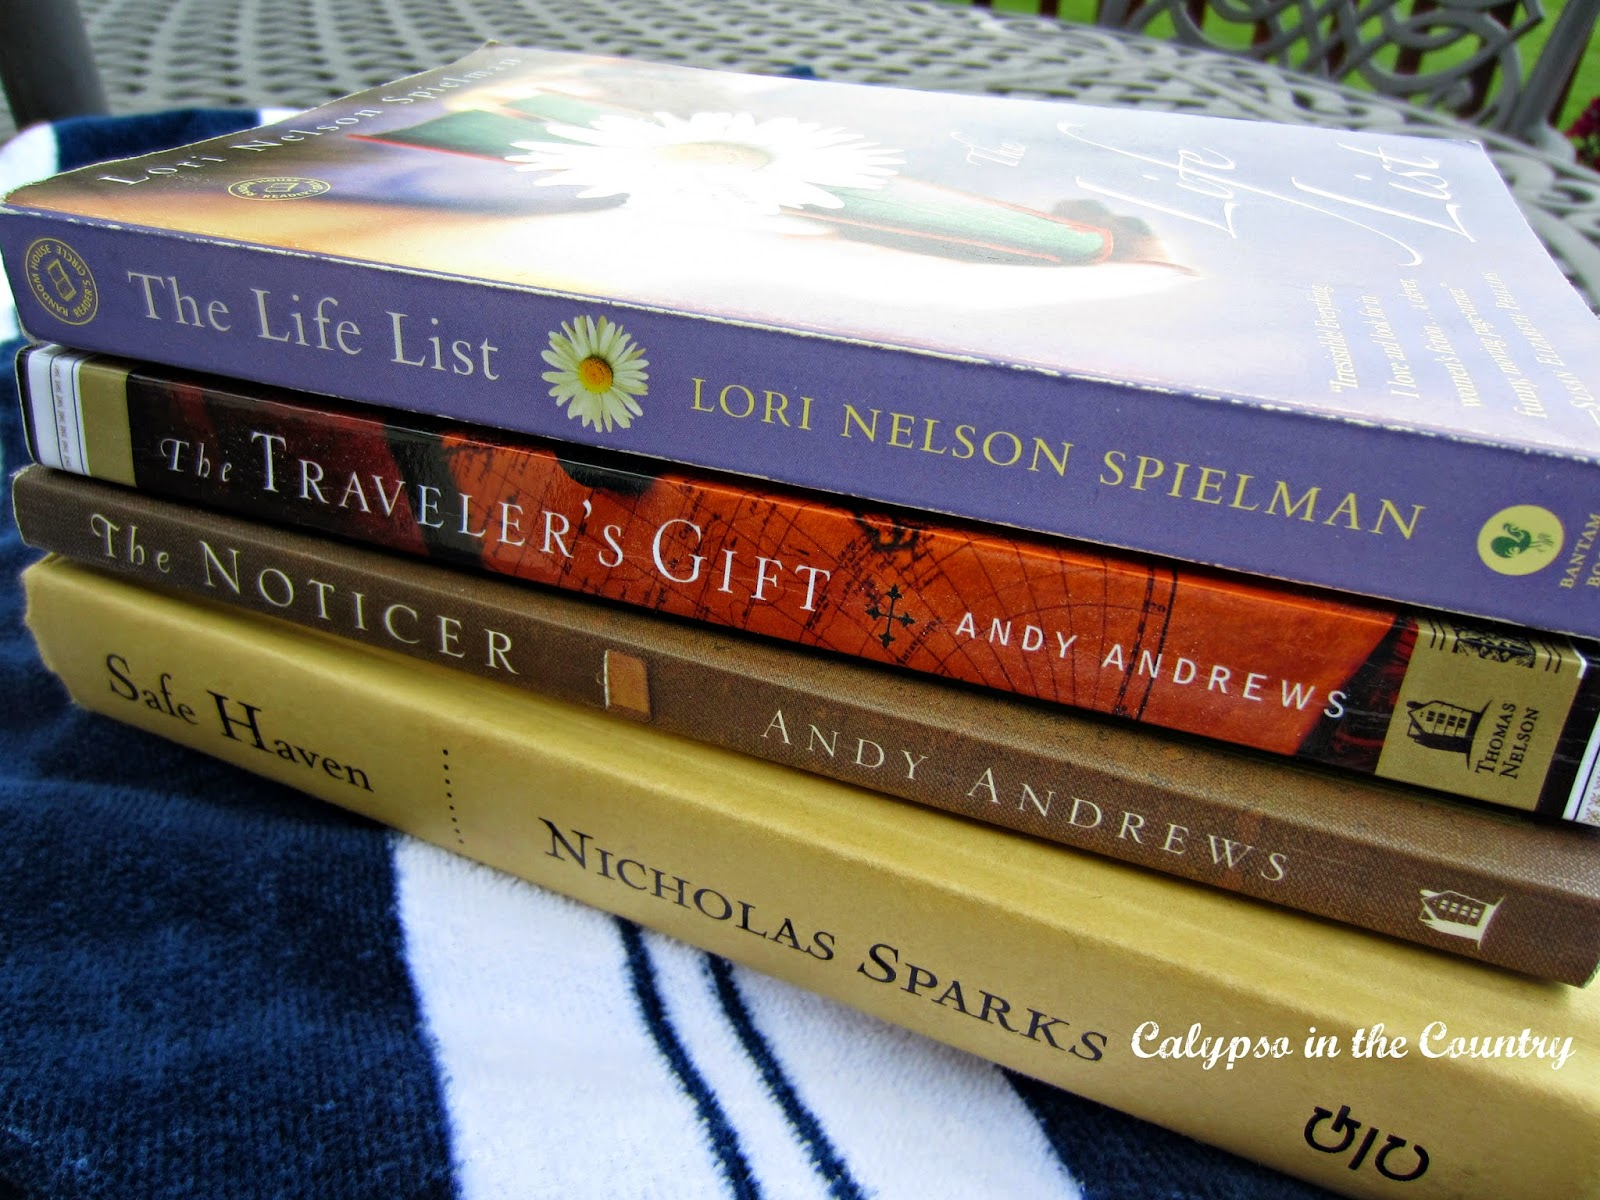 Summer Reading List - Some great books to add to your list!